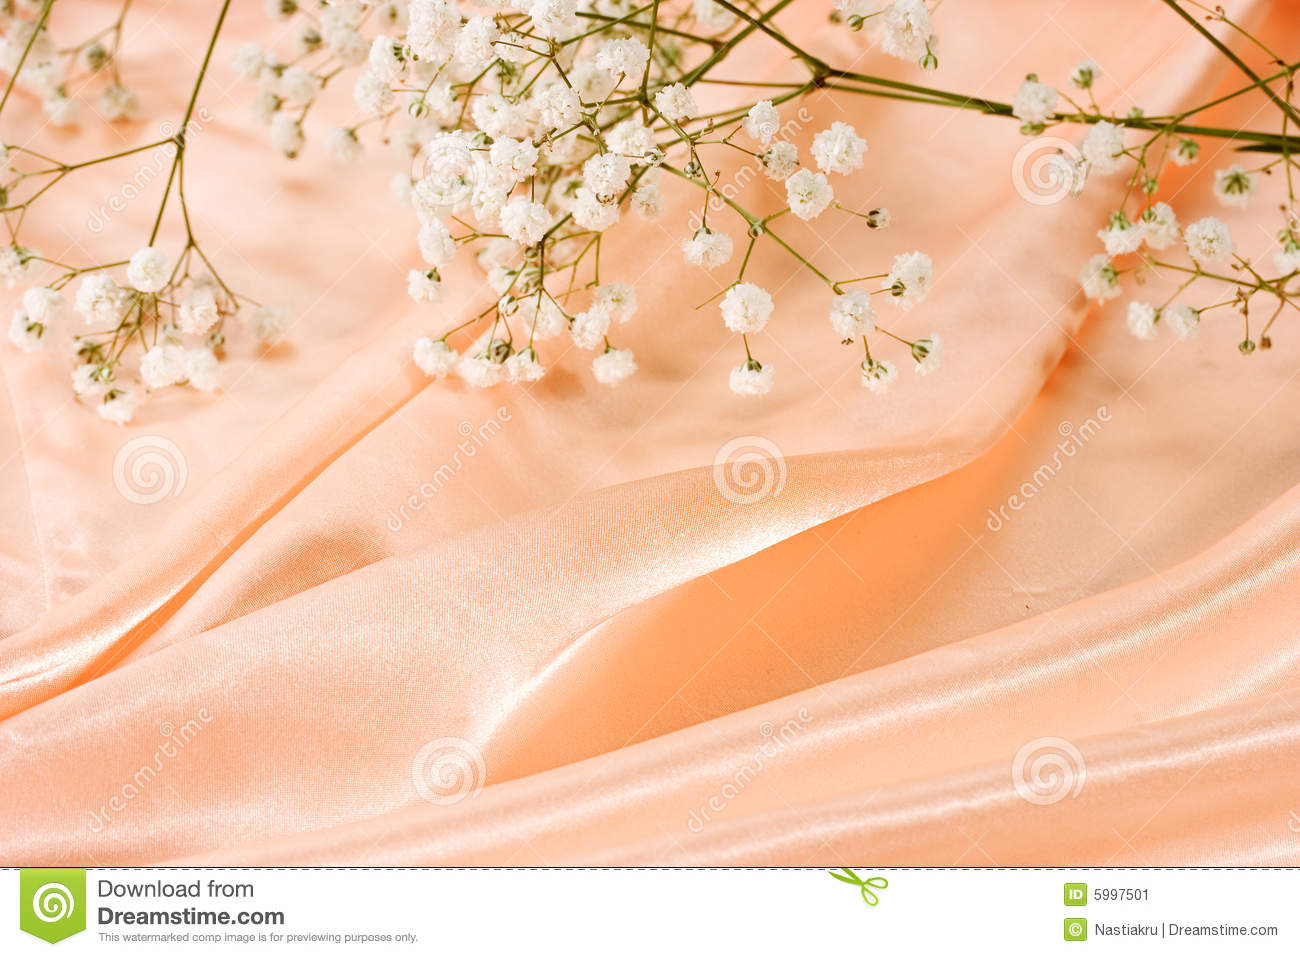 36 130 background color peach photos free royalty free stock photos from dreamstime dreamstime com